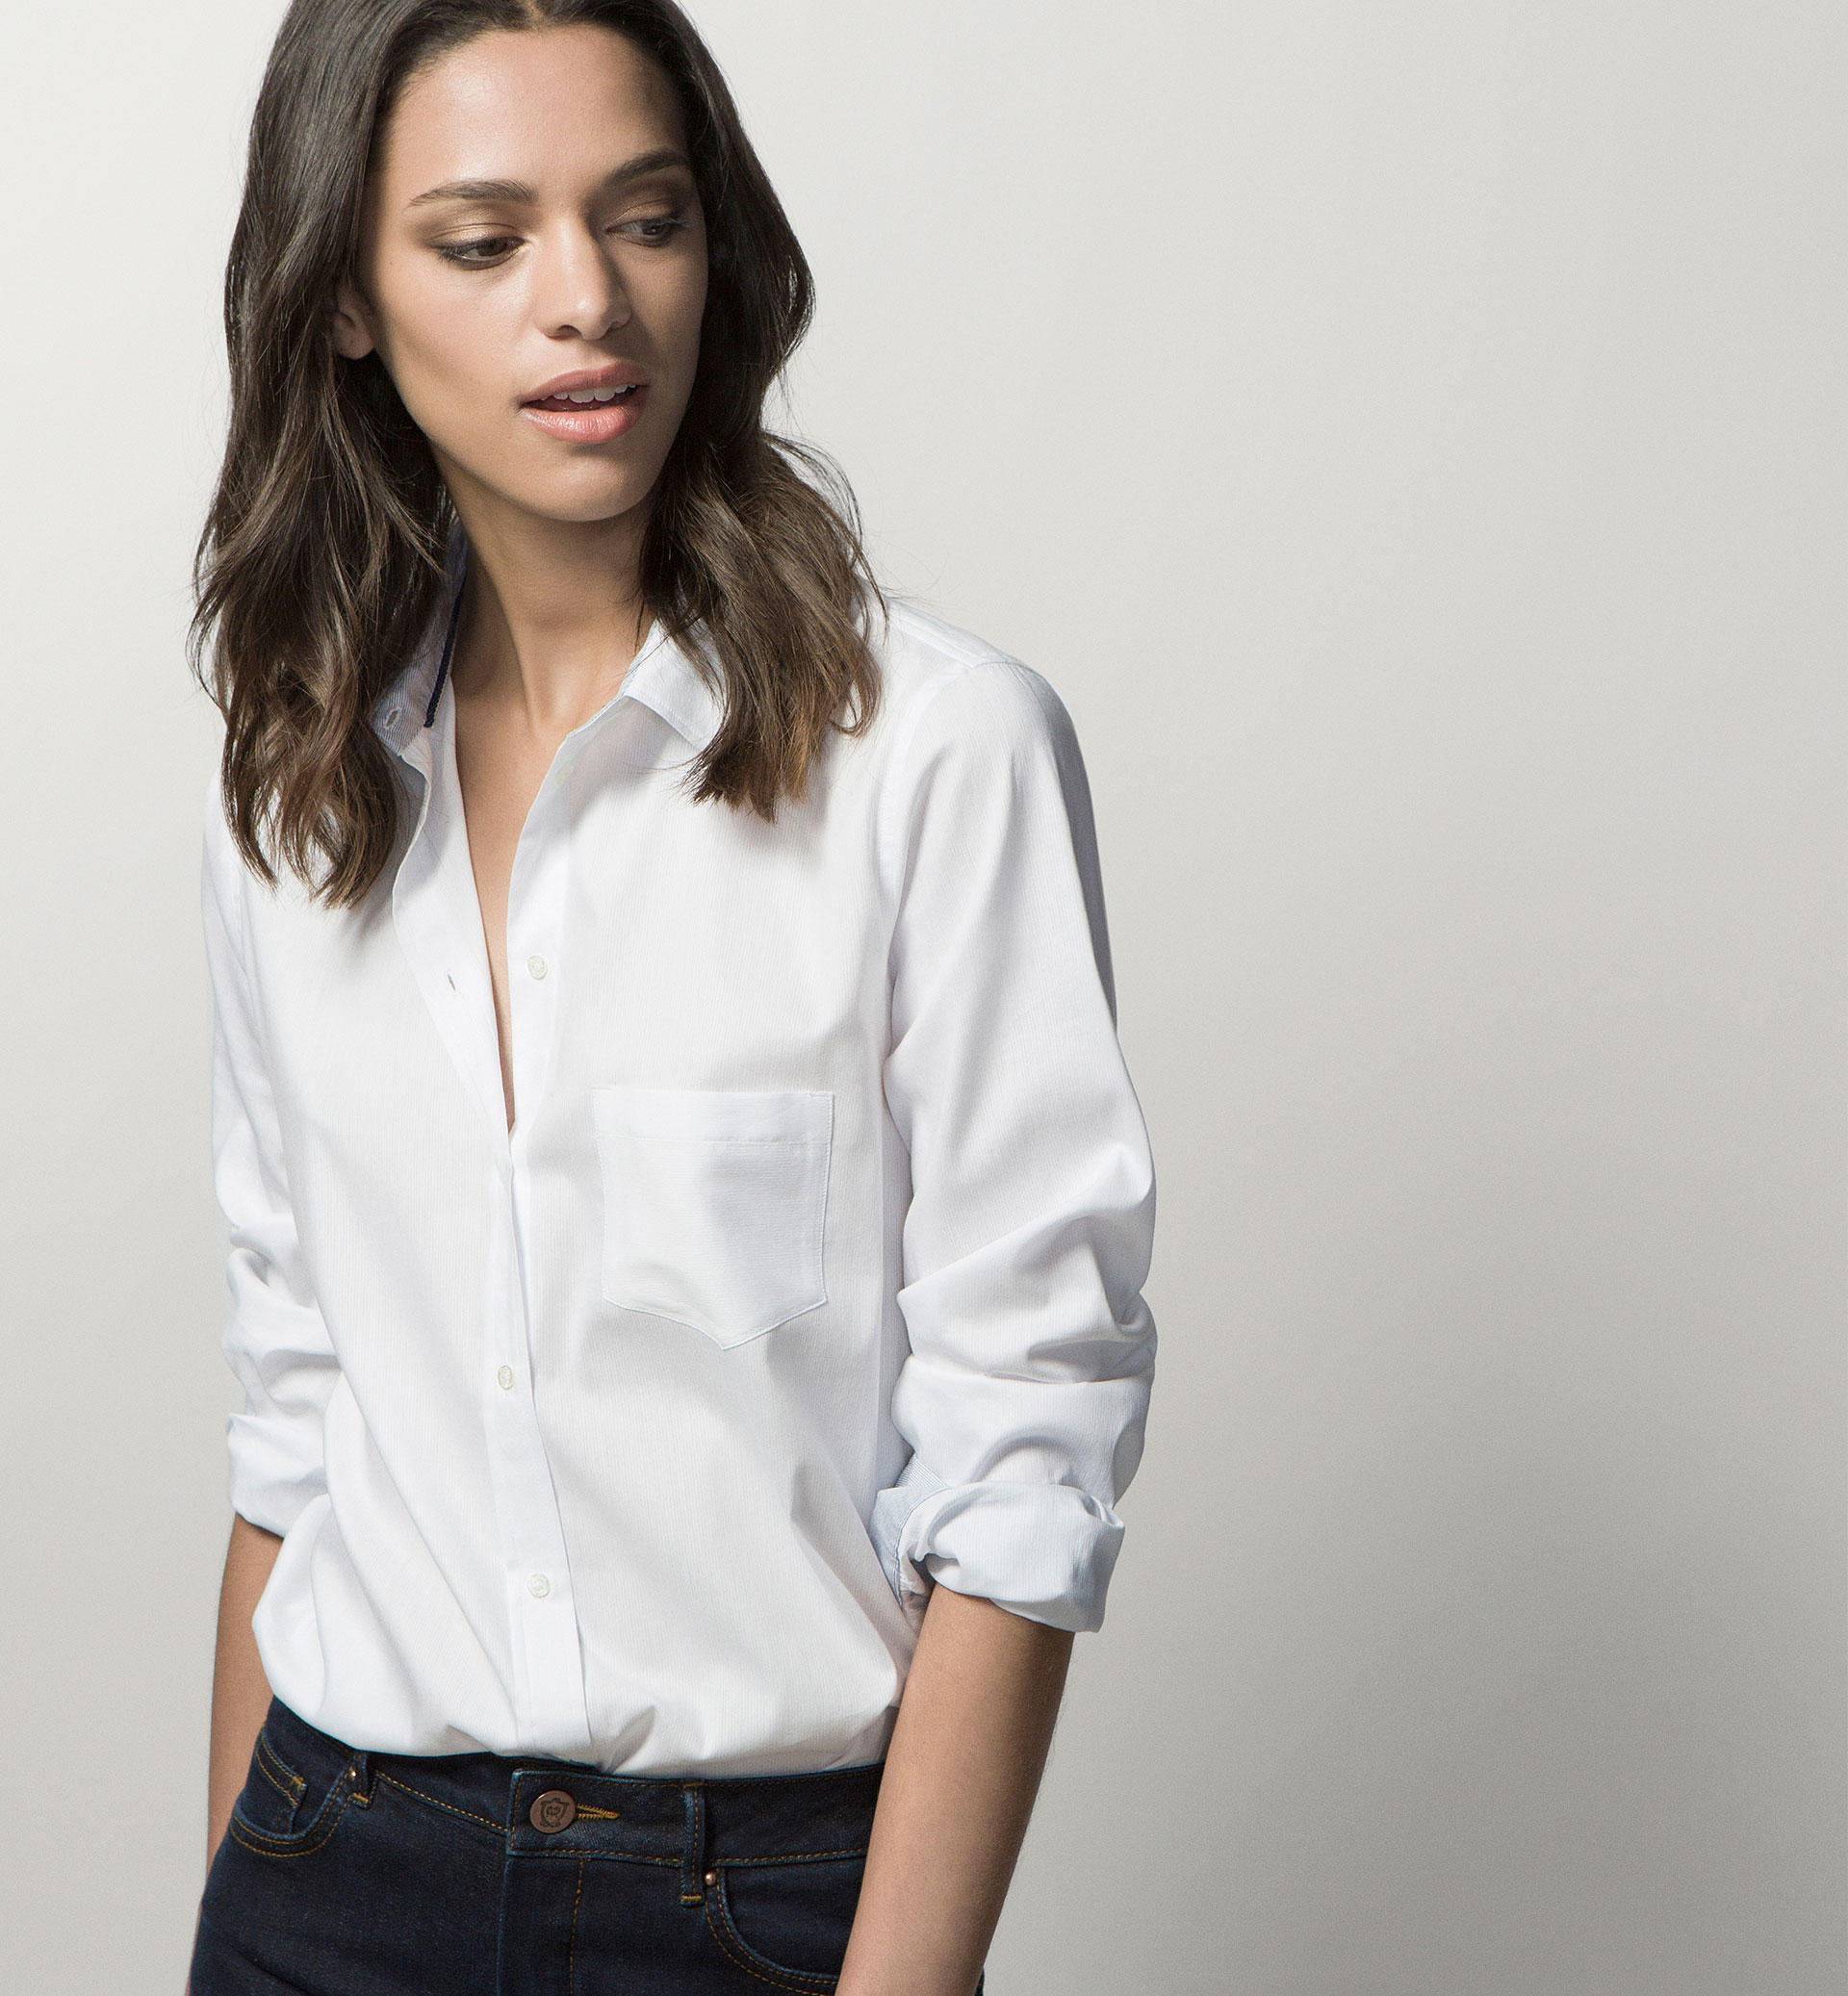 WHITE SHIRT WITH CONTRASTING CUFFS